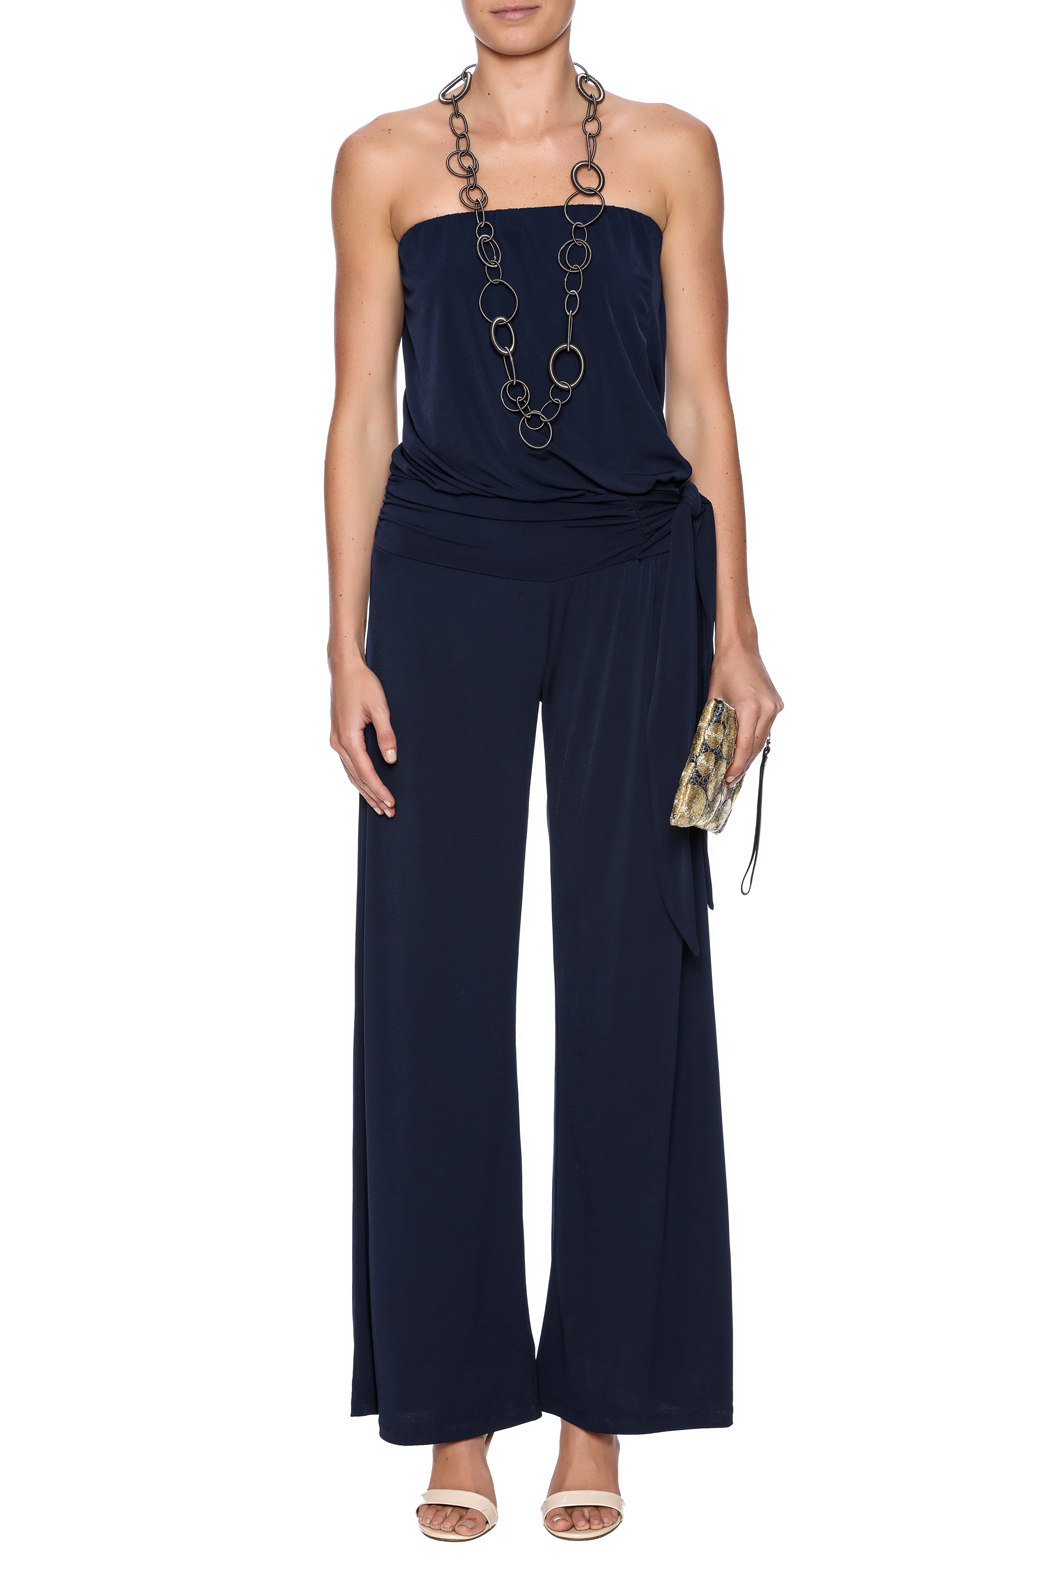 Veronica M Navy Jumpsuit - Front Cropped Image